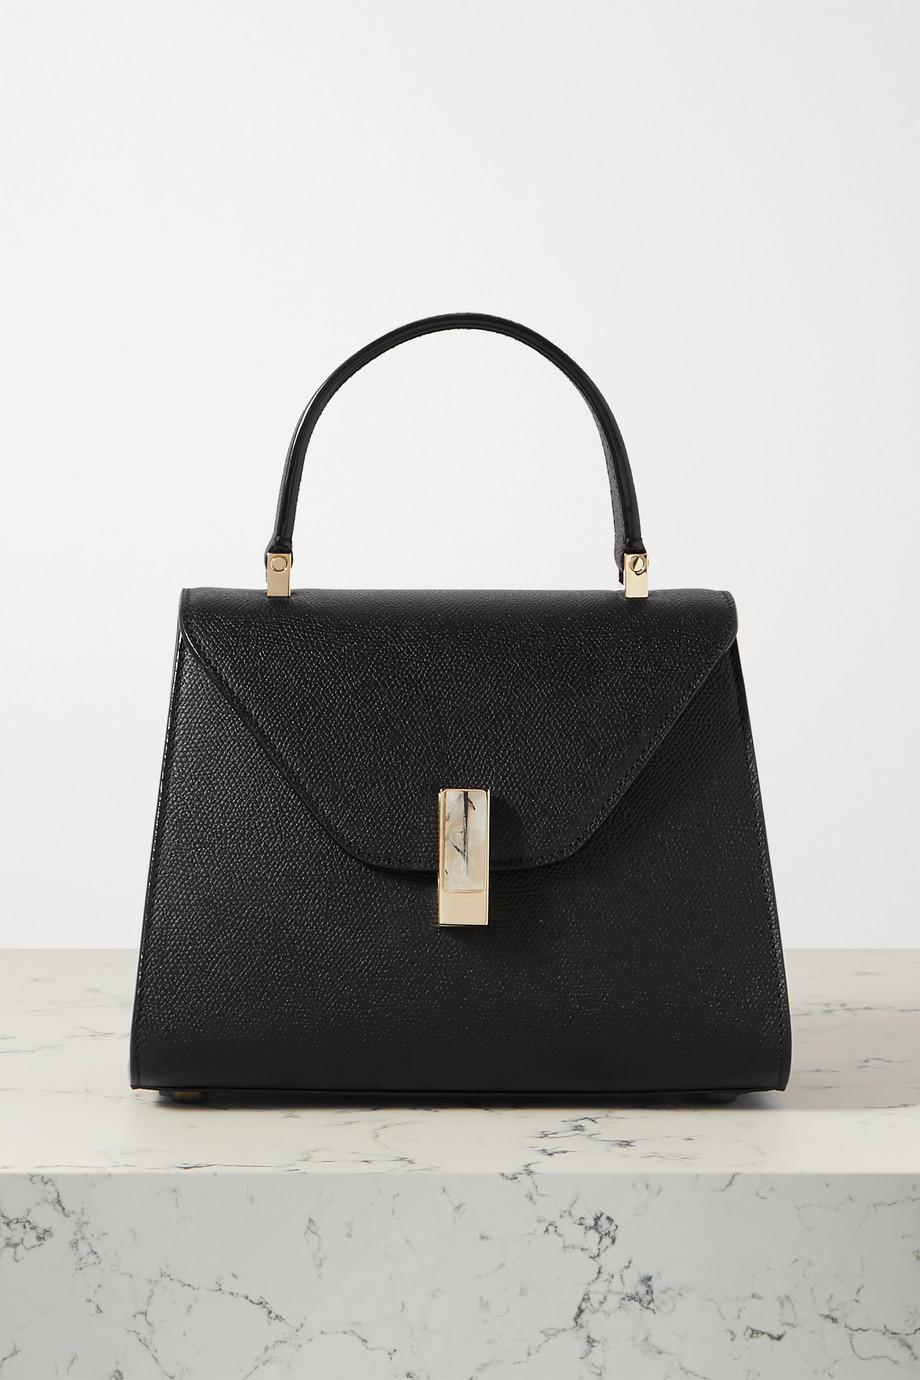 Valextra Iside small textured-leather tote